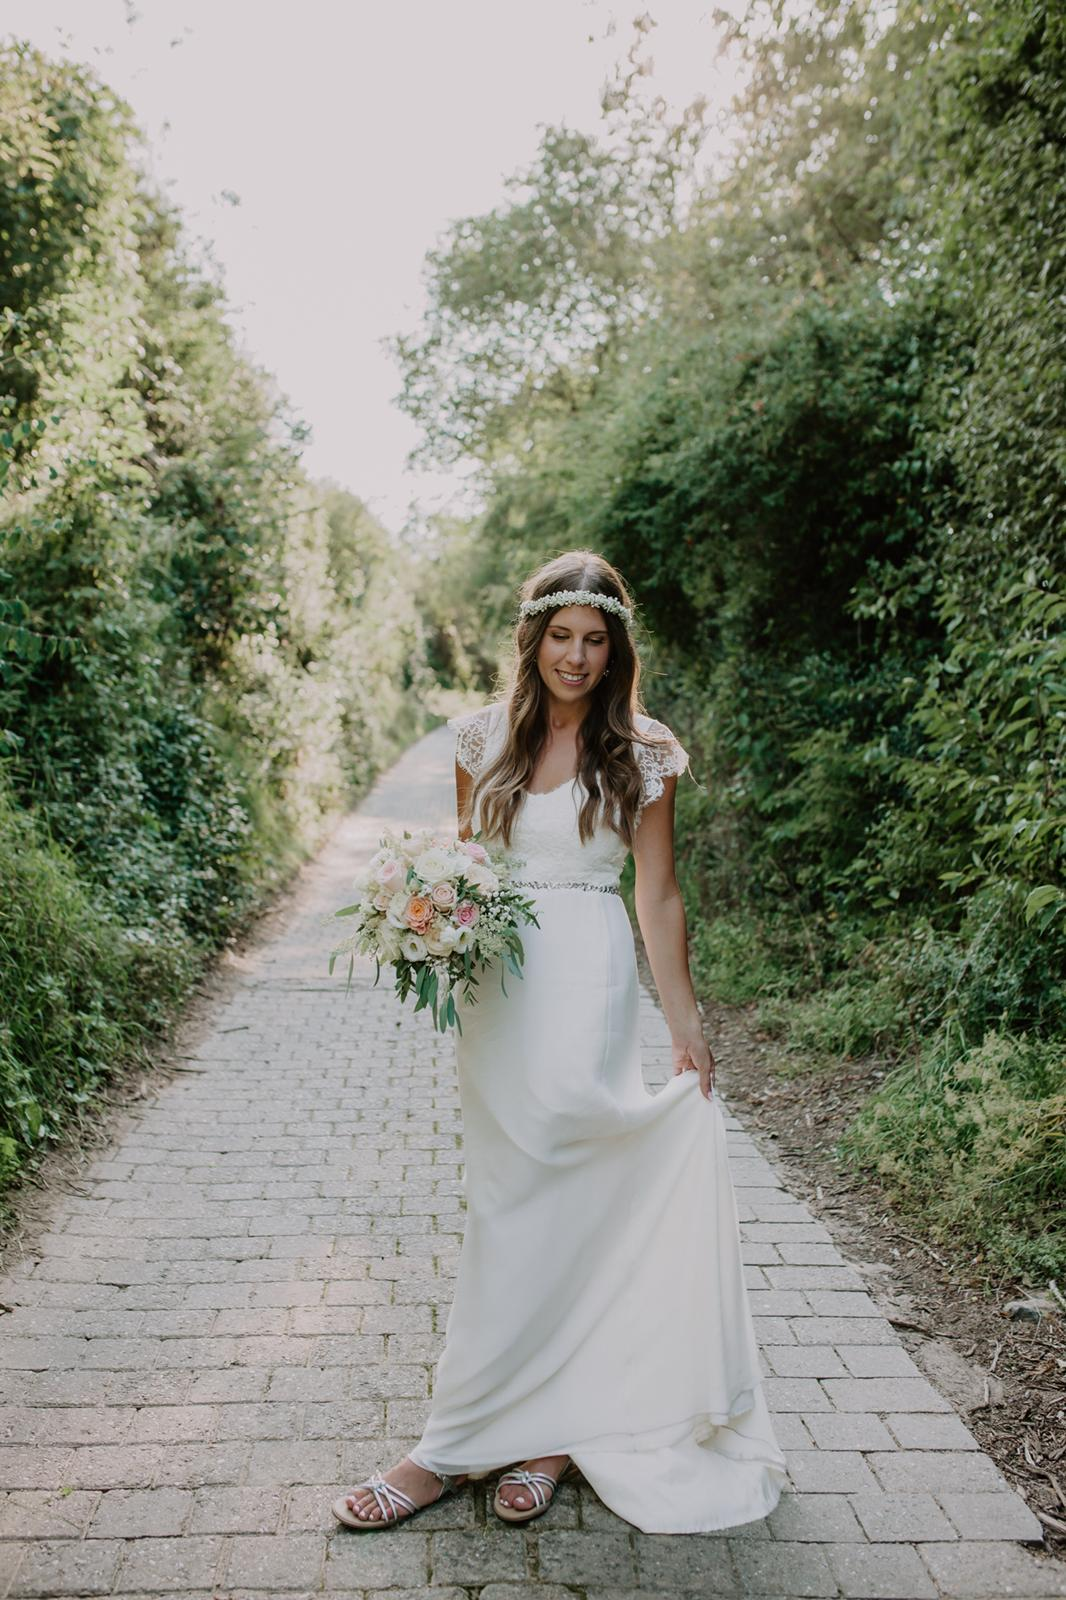 Hochzeit wedding braut bride brautstyling bridal styling  makeup